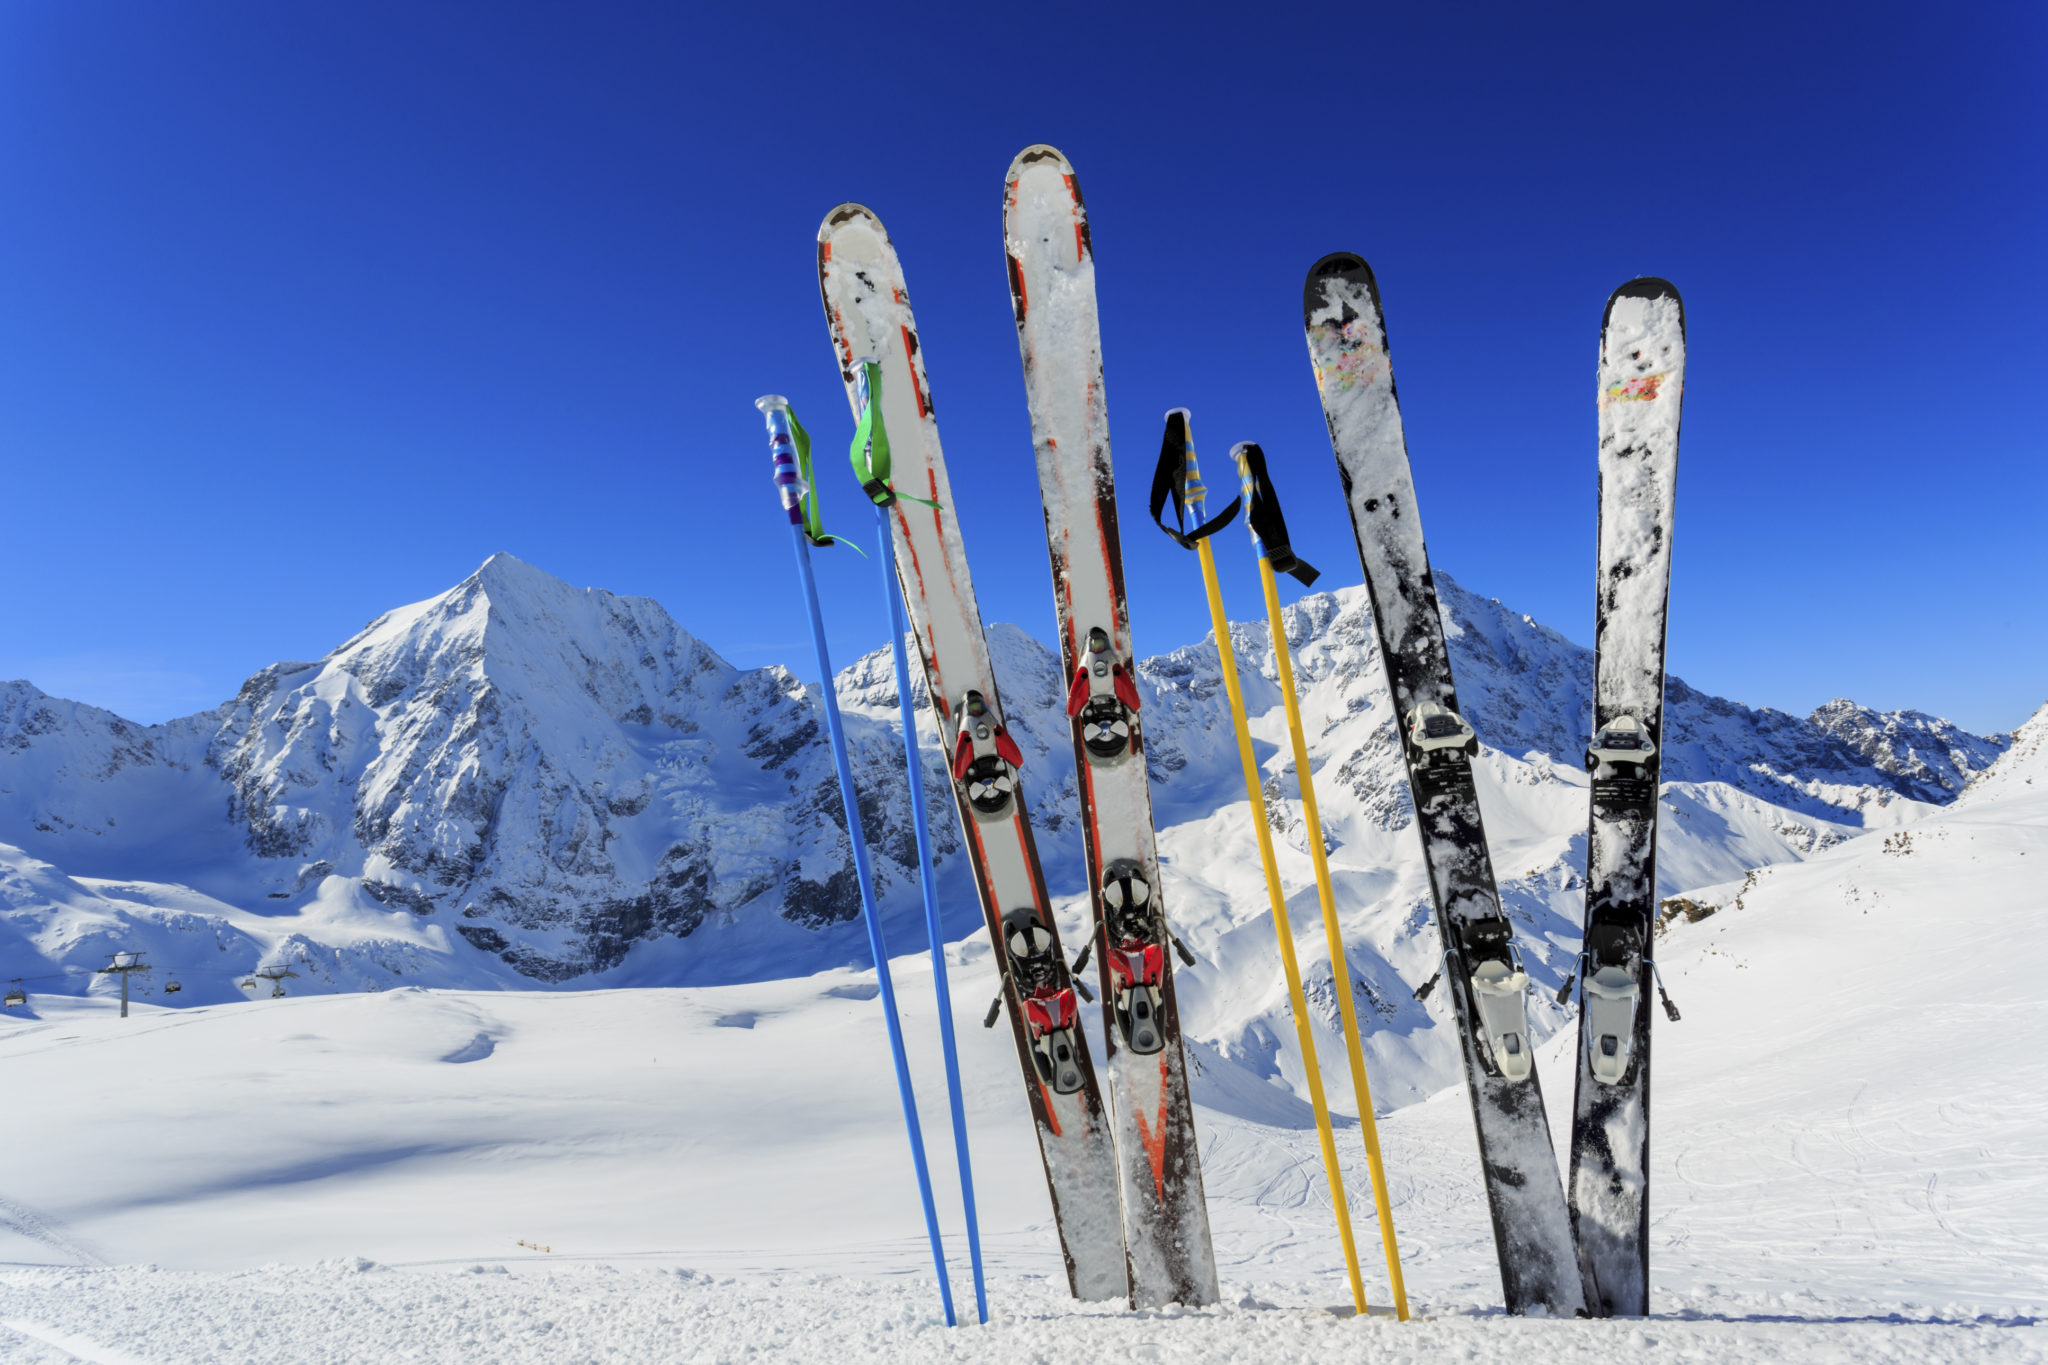 Ski equipments on snow